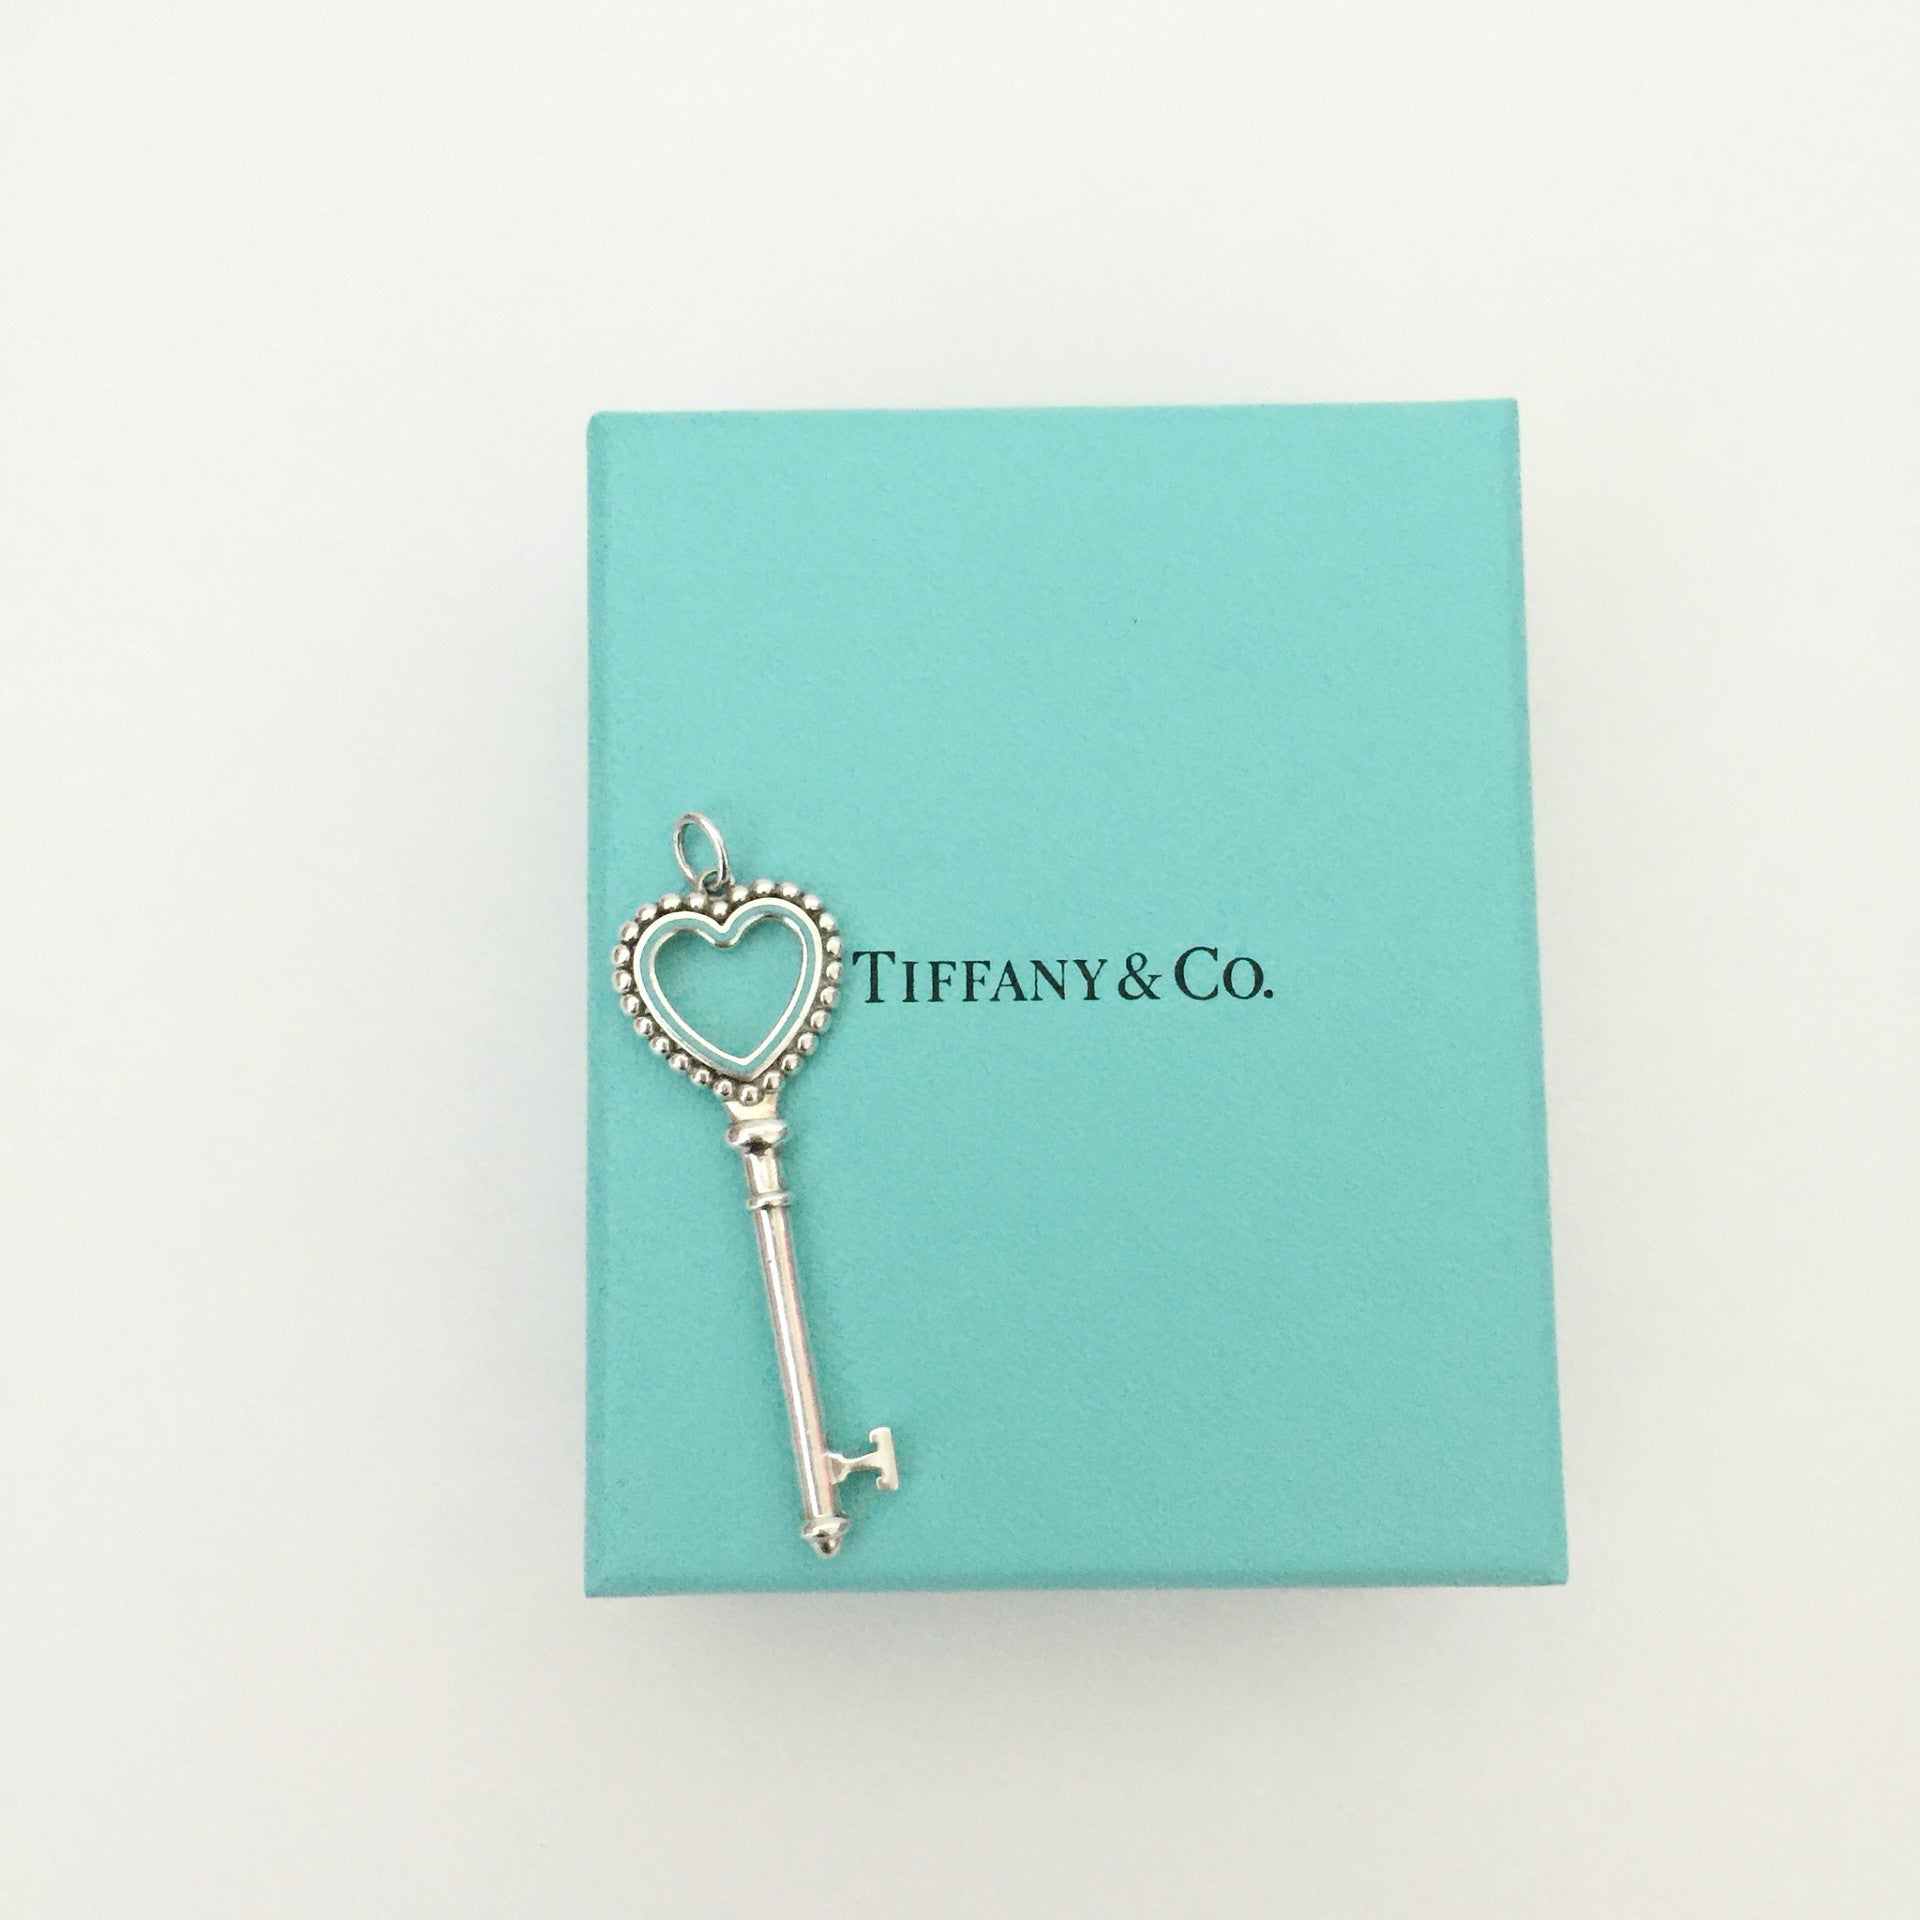 Authentic TIFFANY & CO Key Pendant